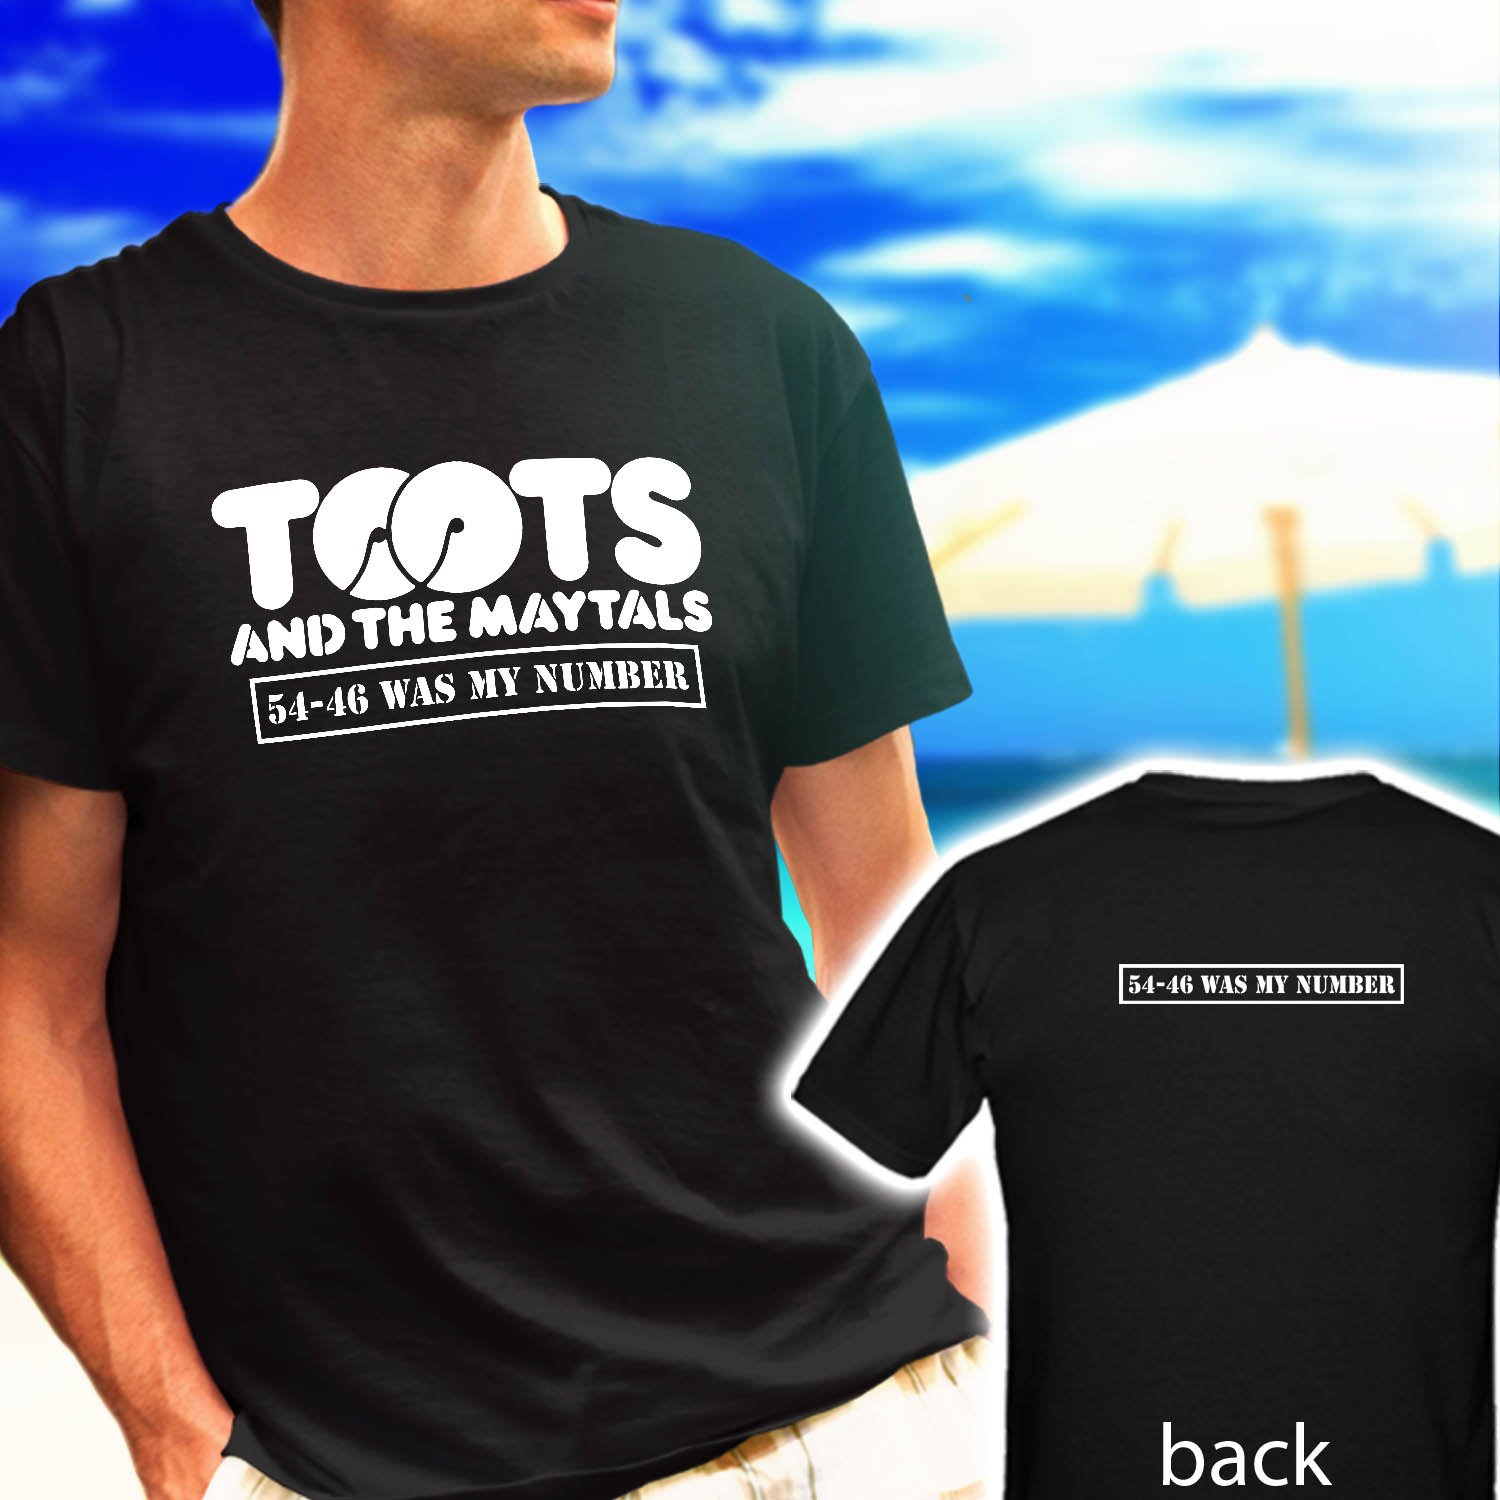 Toots and The Maytals Reggae Studio 54-46 was my number black t-shirt tshirt shirts tee SIZE 3XL